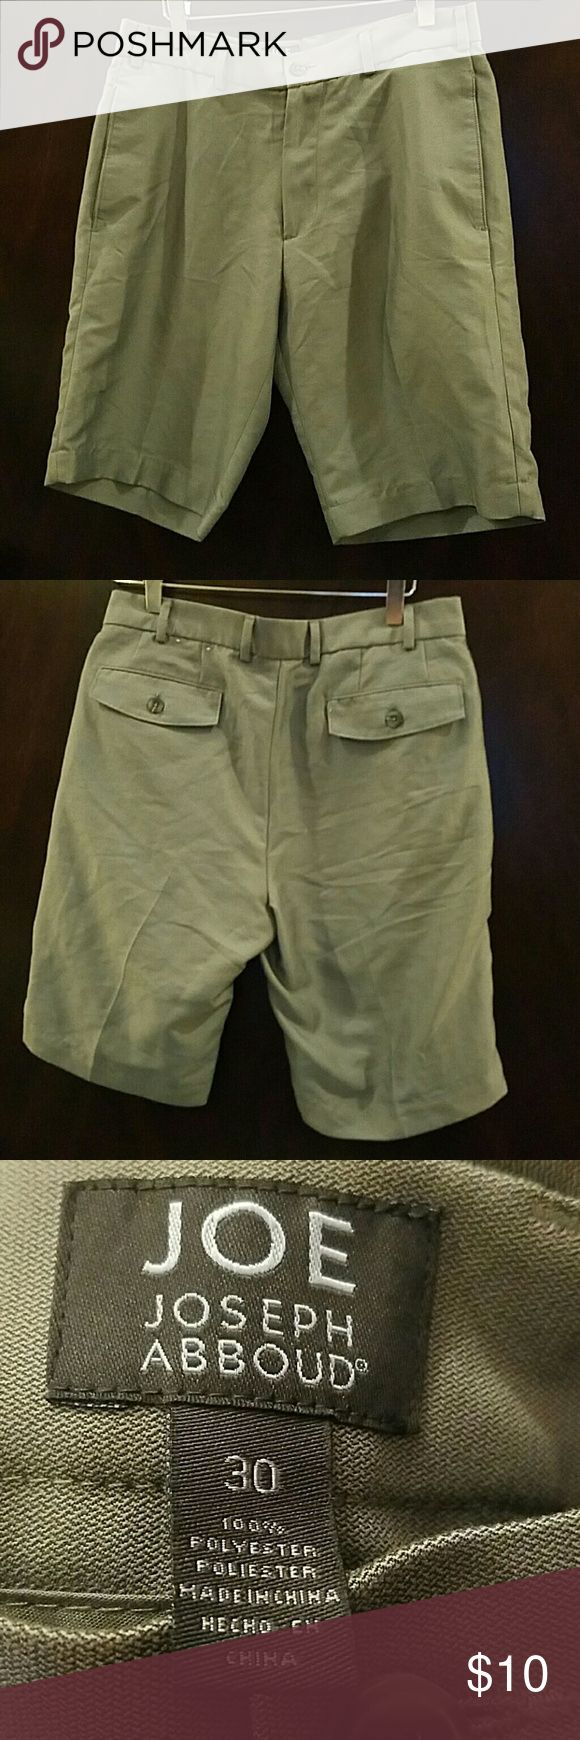 Joe by Joseph Abboud Men's Dress Shorts, 30 Super soft dress shorts by Joe: Joseph Abboud. Gray with Taupe Undertones. Bought for my son and he couldn't fit them but didn't tell me until he removed the tags and stuffed the in back of his closet for months. JOE Joseph Abboud Shorts